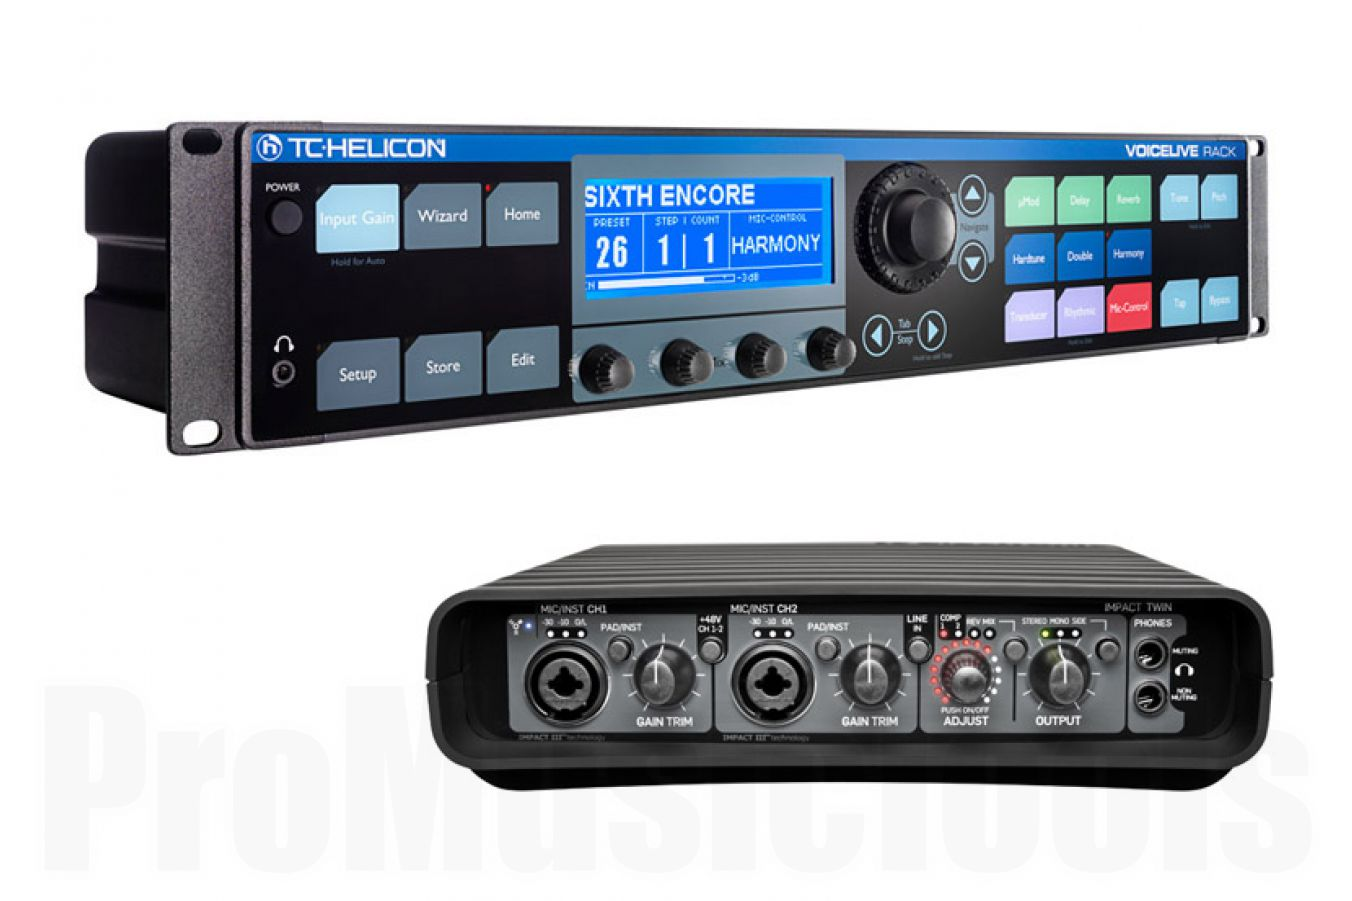 TC Helicon VoiceLive Rack Ultimate Studio Bundle incl. TC Electronic Impact Twin